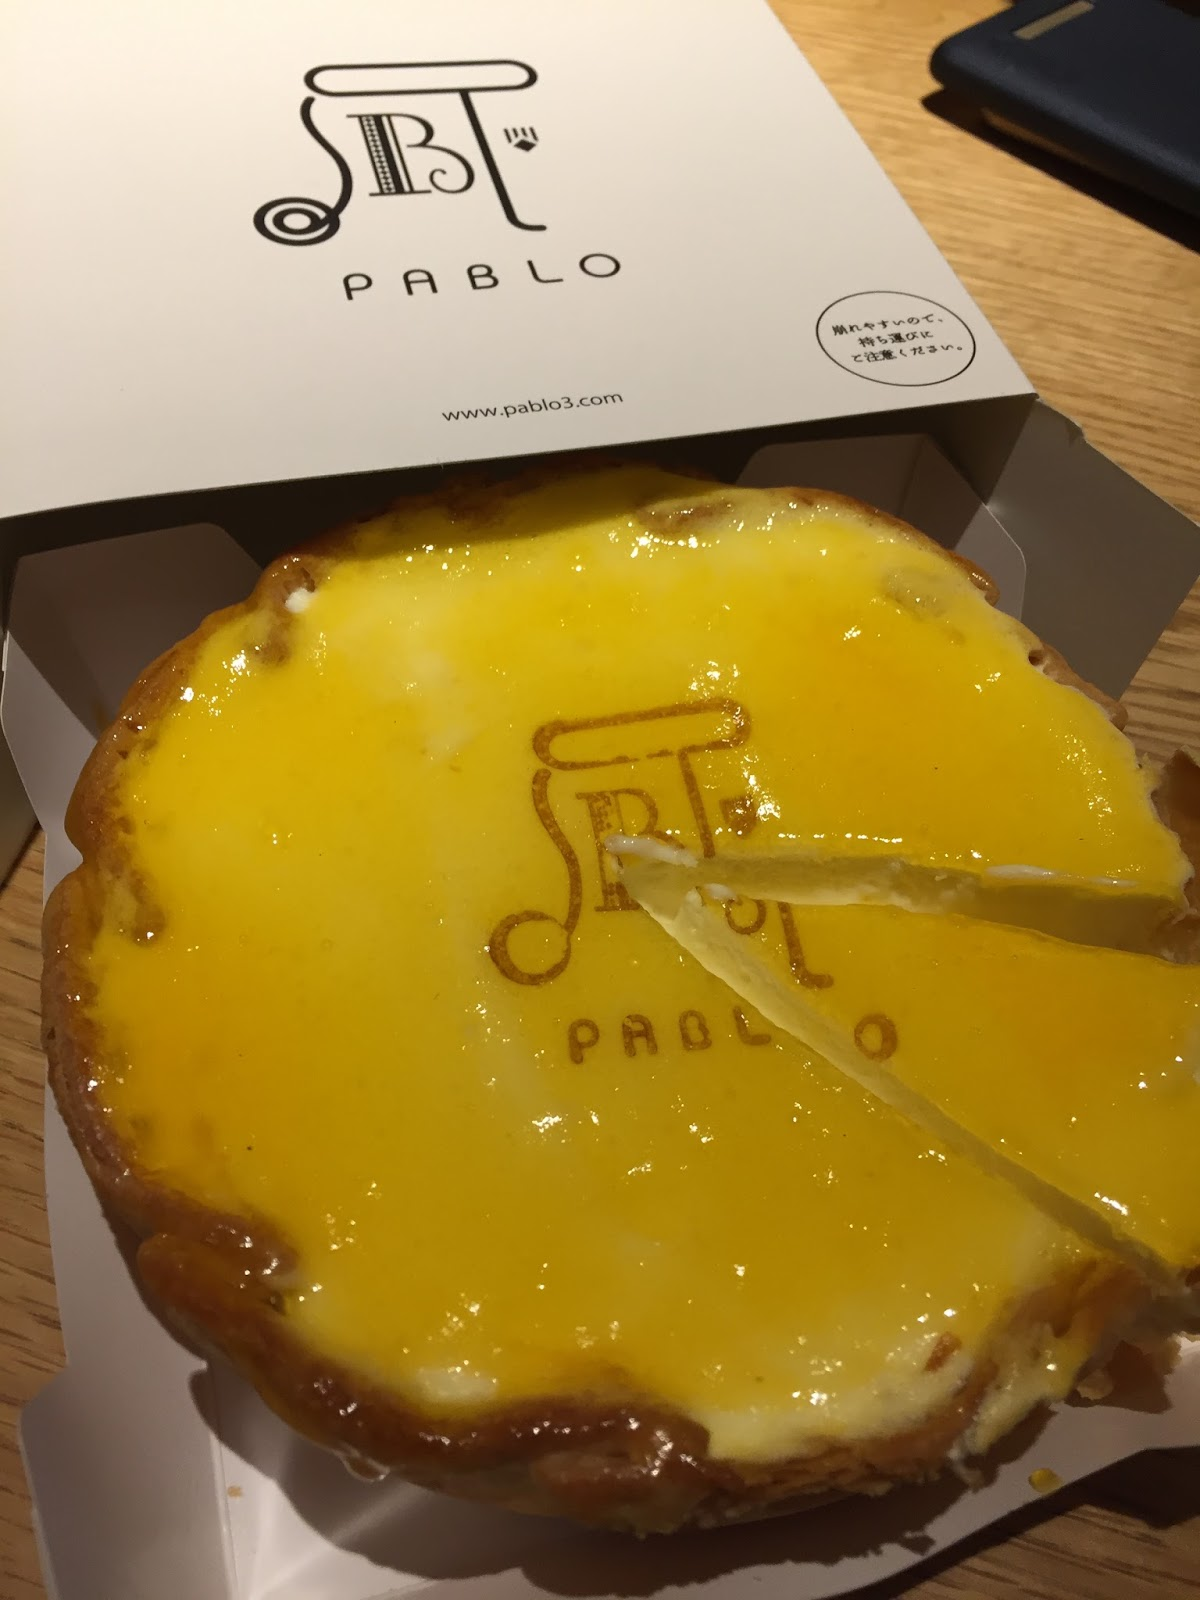 Japan Pablo Cafe Harajuku Grabandbites Food And Sabrel Cheese Matcha Got A Chance To Visit The Famous Tart Outlet In Place Was Crowded But Not As Indonesia